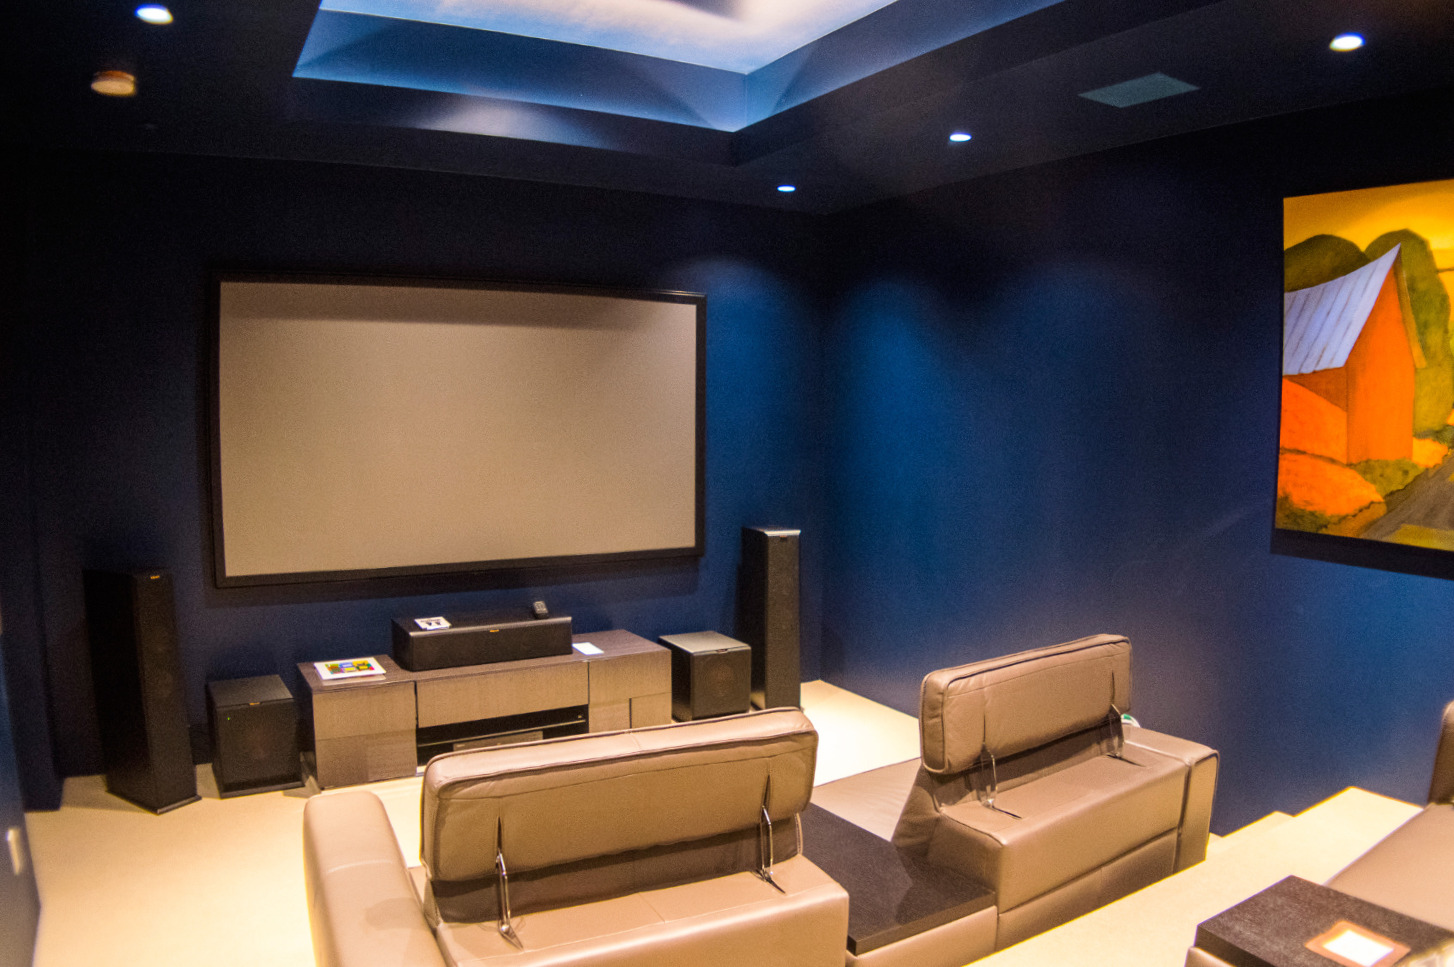 Home theater with projector screen